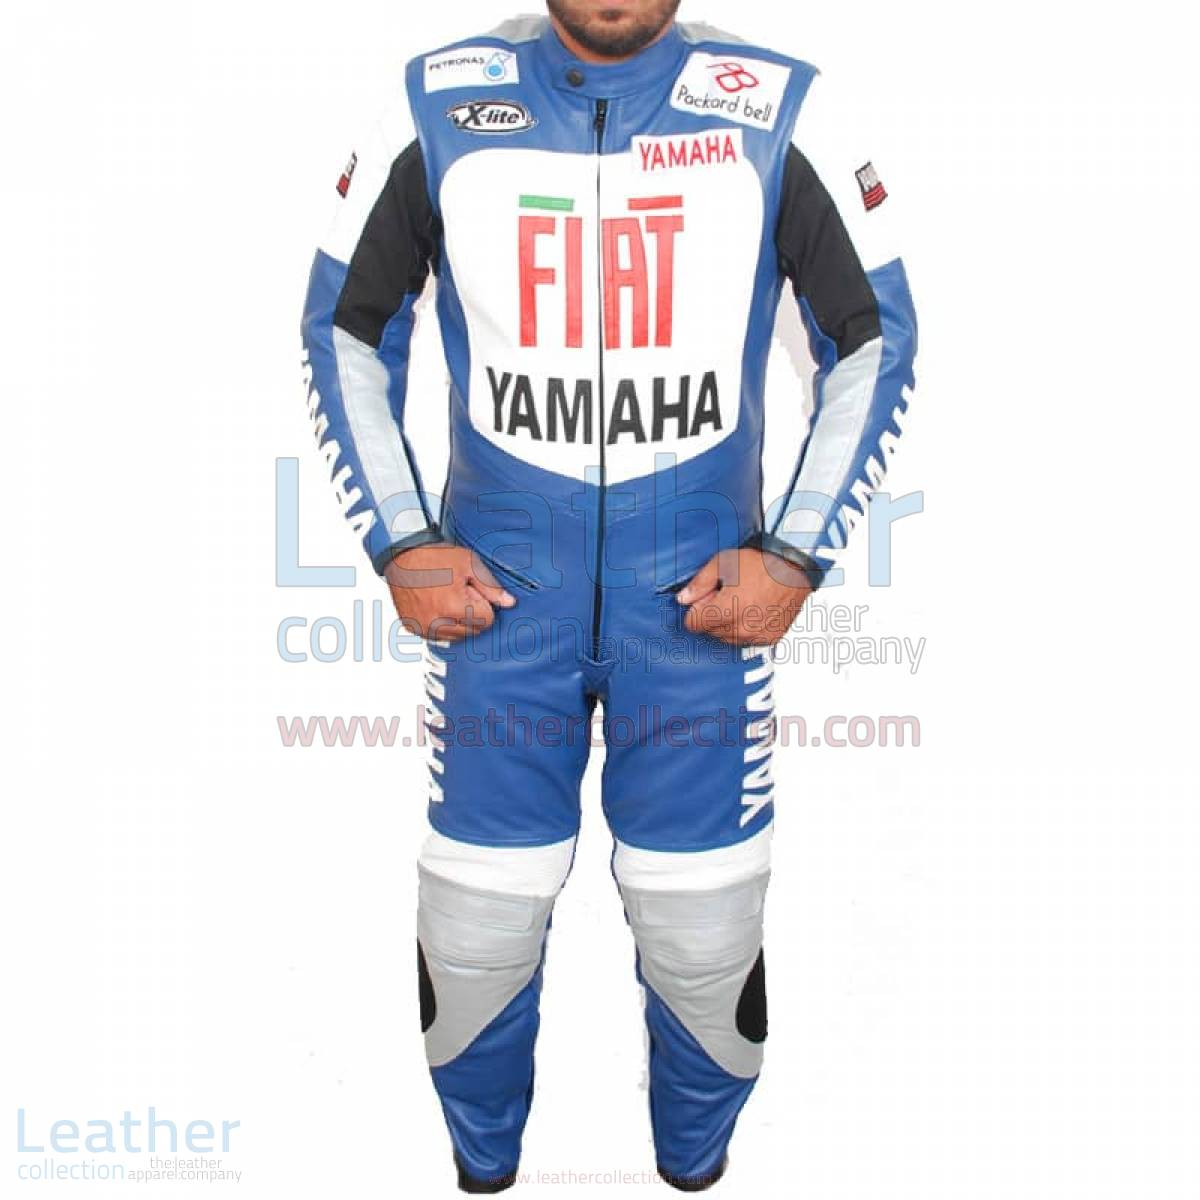 Yamaha FIAT Motorcycle Racing Leather Suit – Yamaha Suit